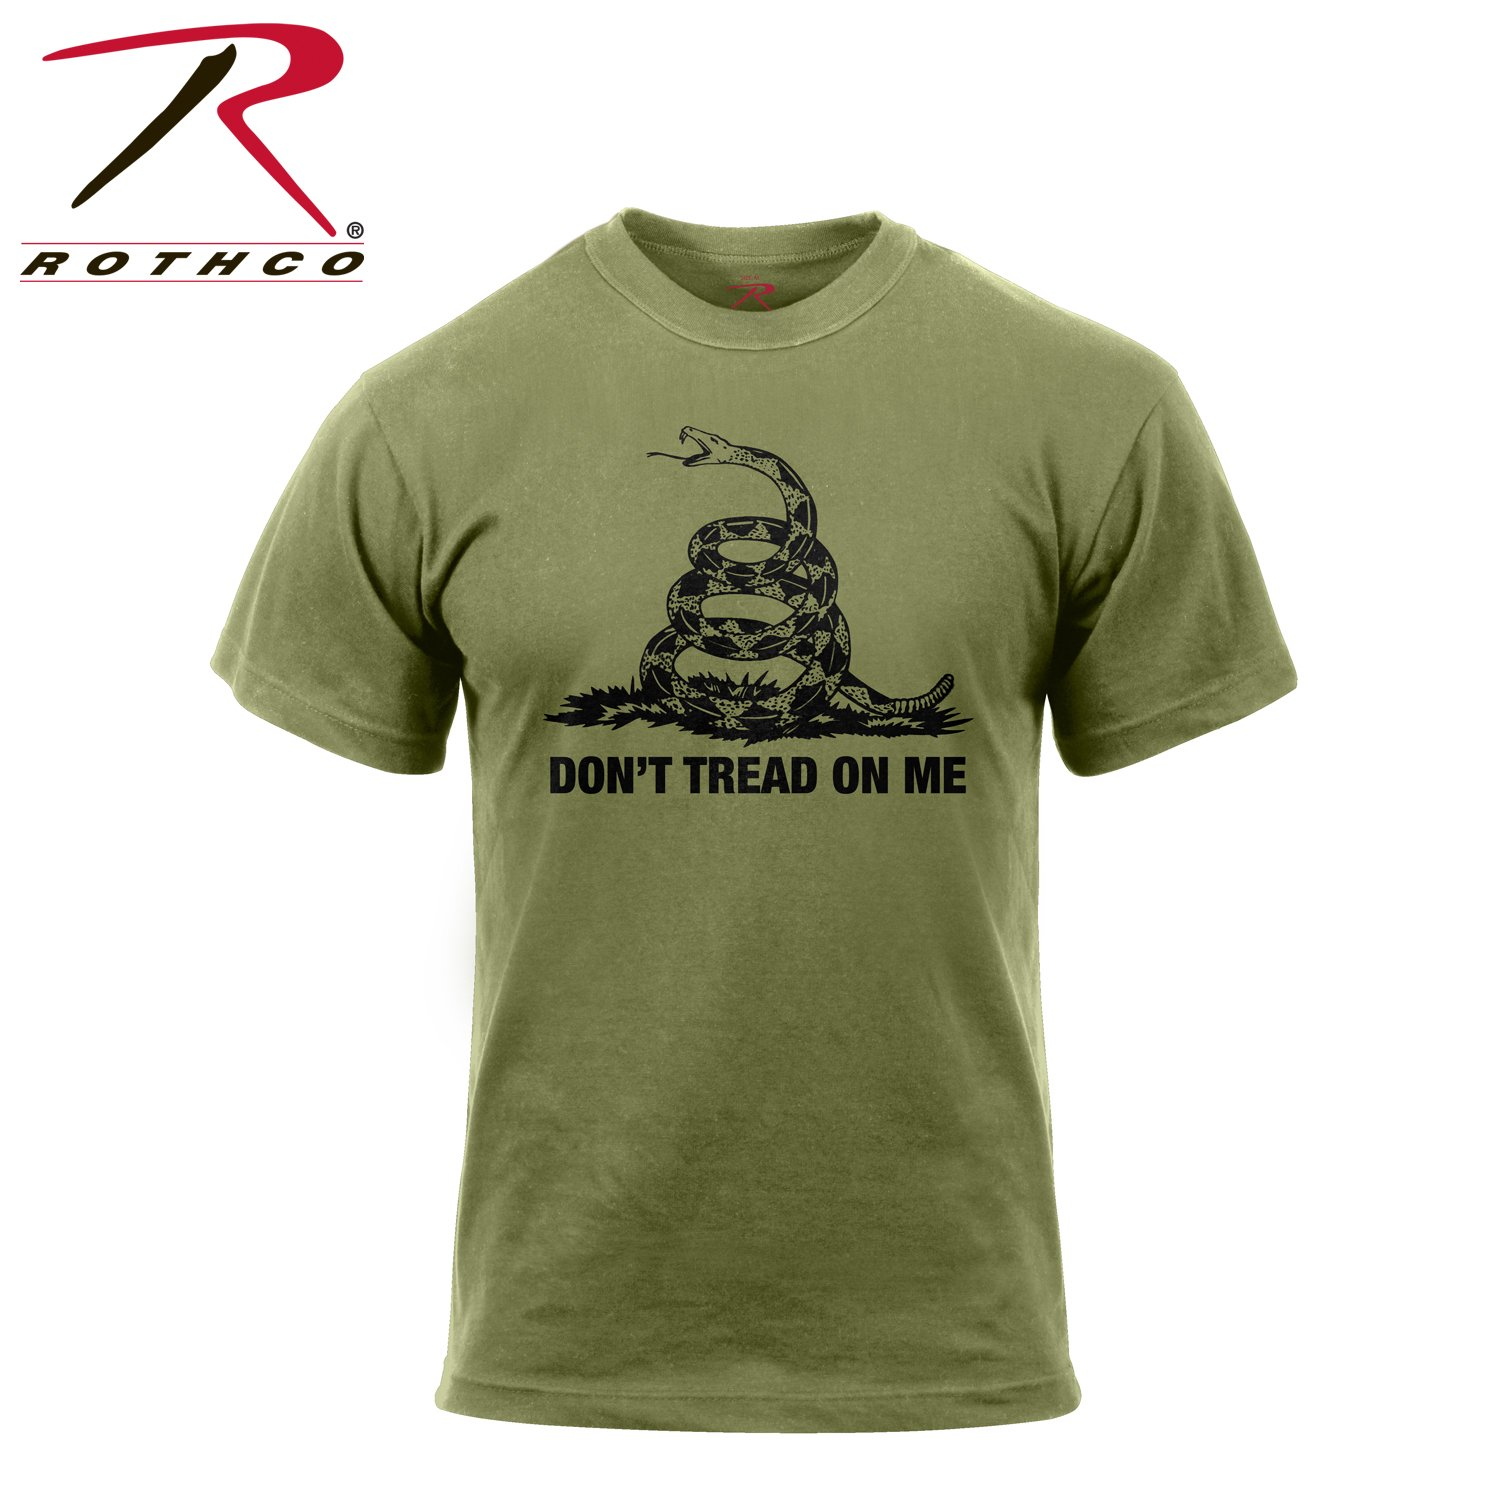 Rothco Don't Tread On Me T-Shirt, Olive Drab, 3X-Large